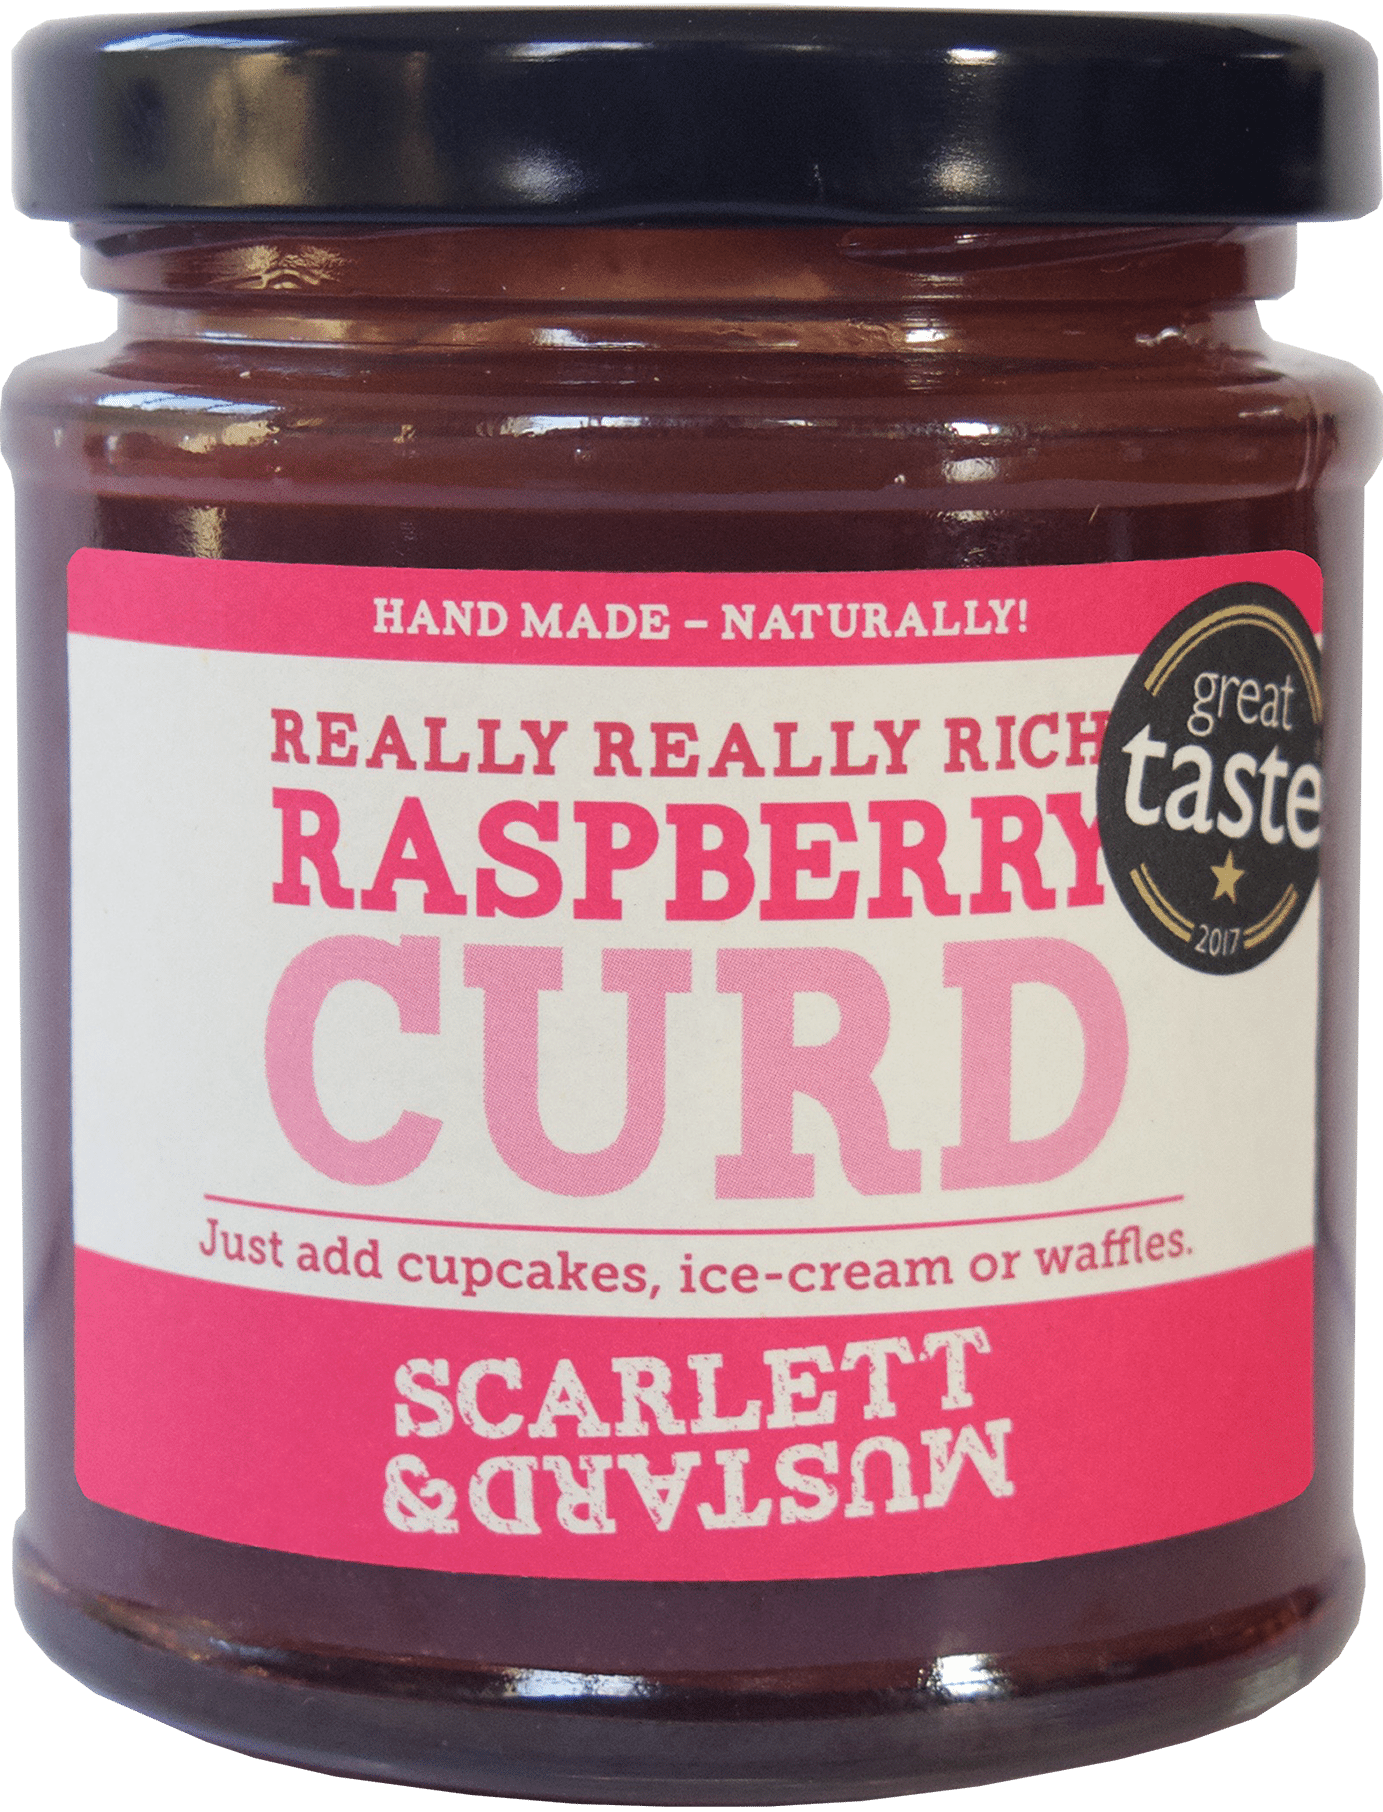 A 200g jar of Raspberry Curd